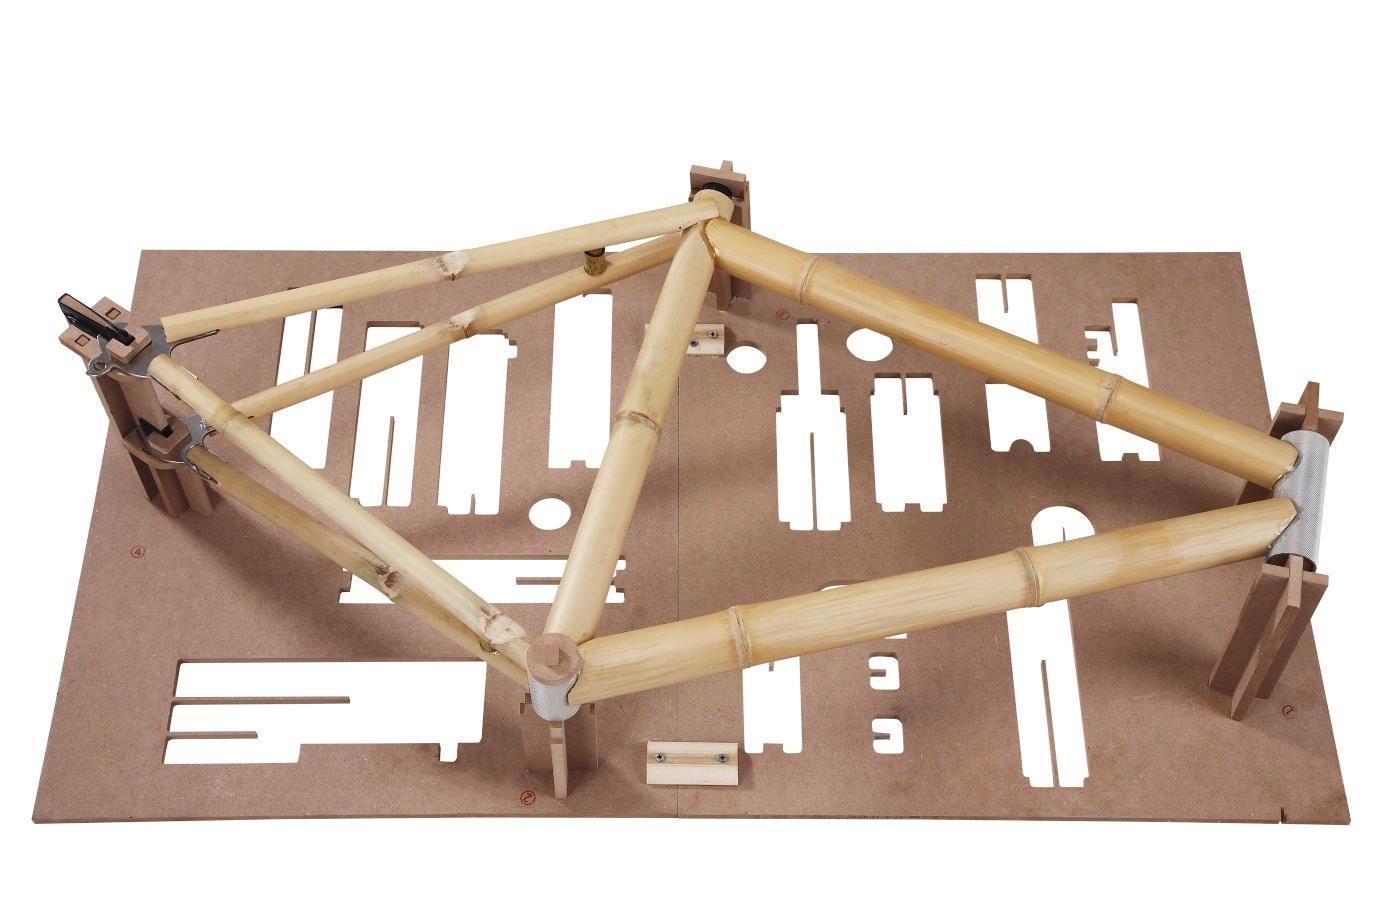 Bamboobee build it yourself bamboo bicycle kit 170 each kit im game for a weekend diy bamboo bike frame project this new kit by bamboobee includes all the necessary parts to construct your very own bamboo bike solutioingenieria Choice Image